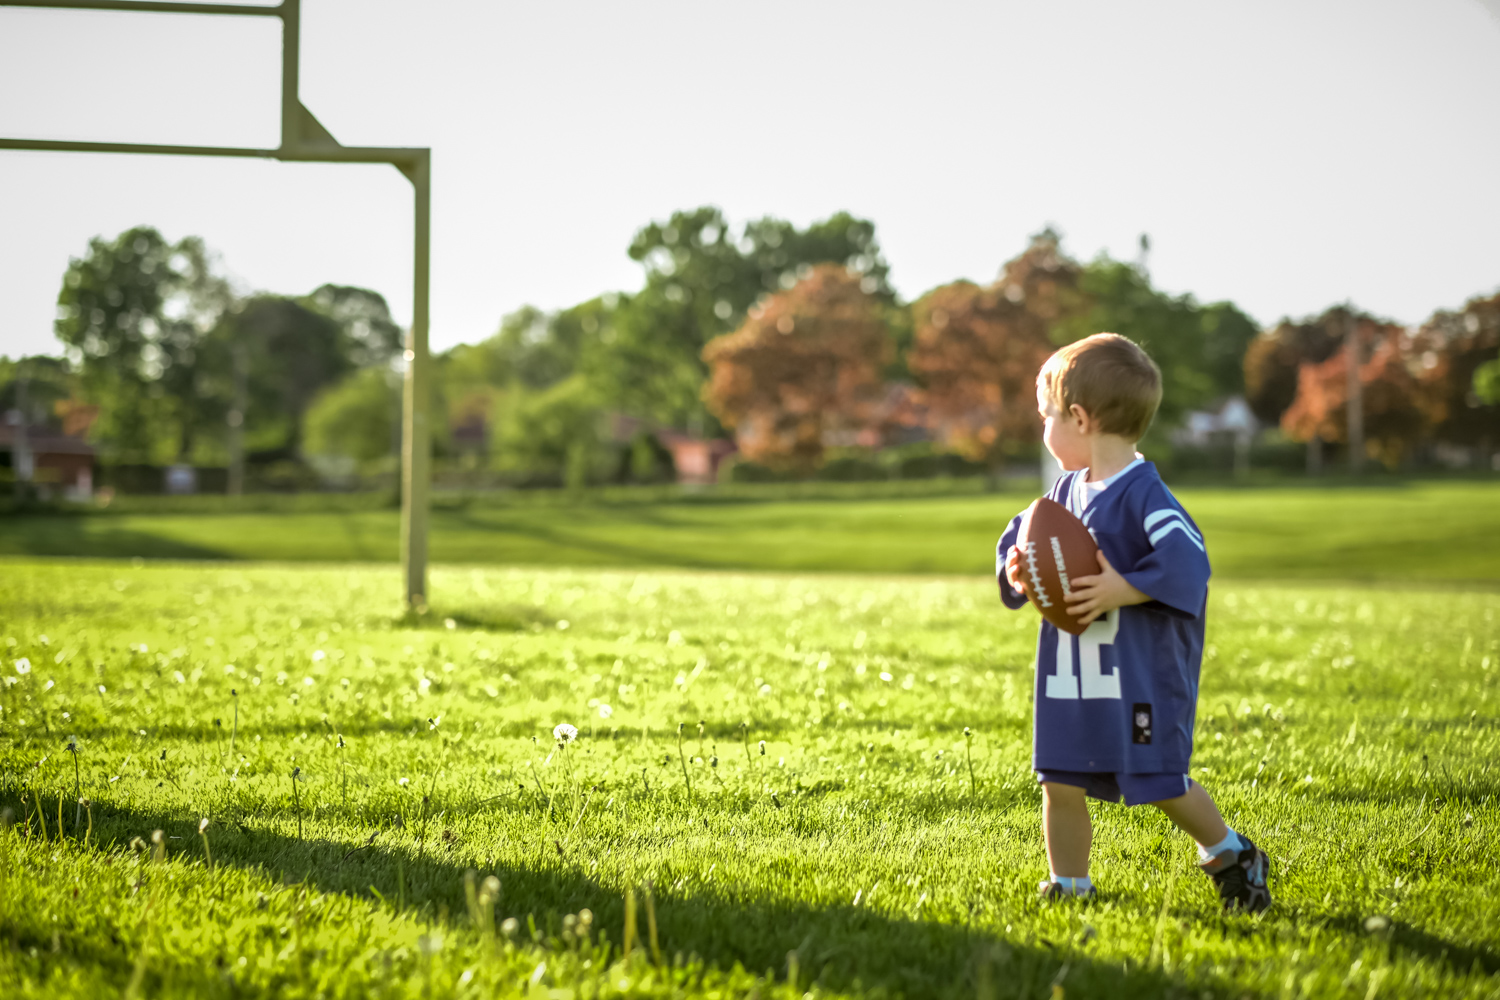 Toddler-photo-session-Toddler photos at football field